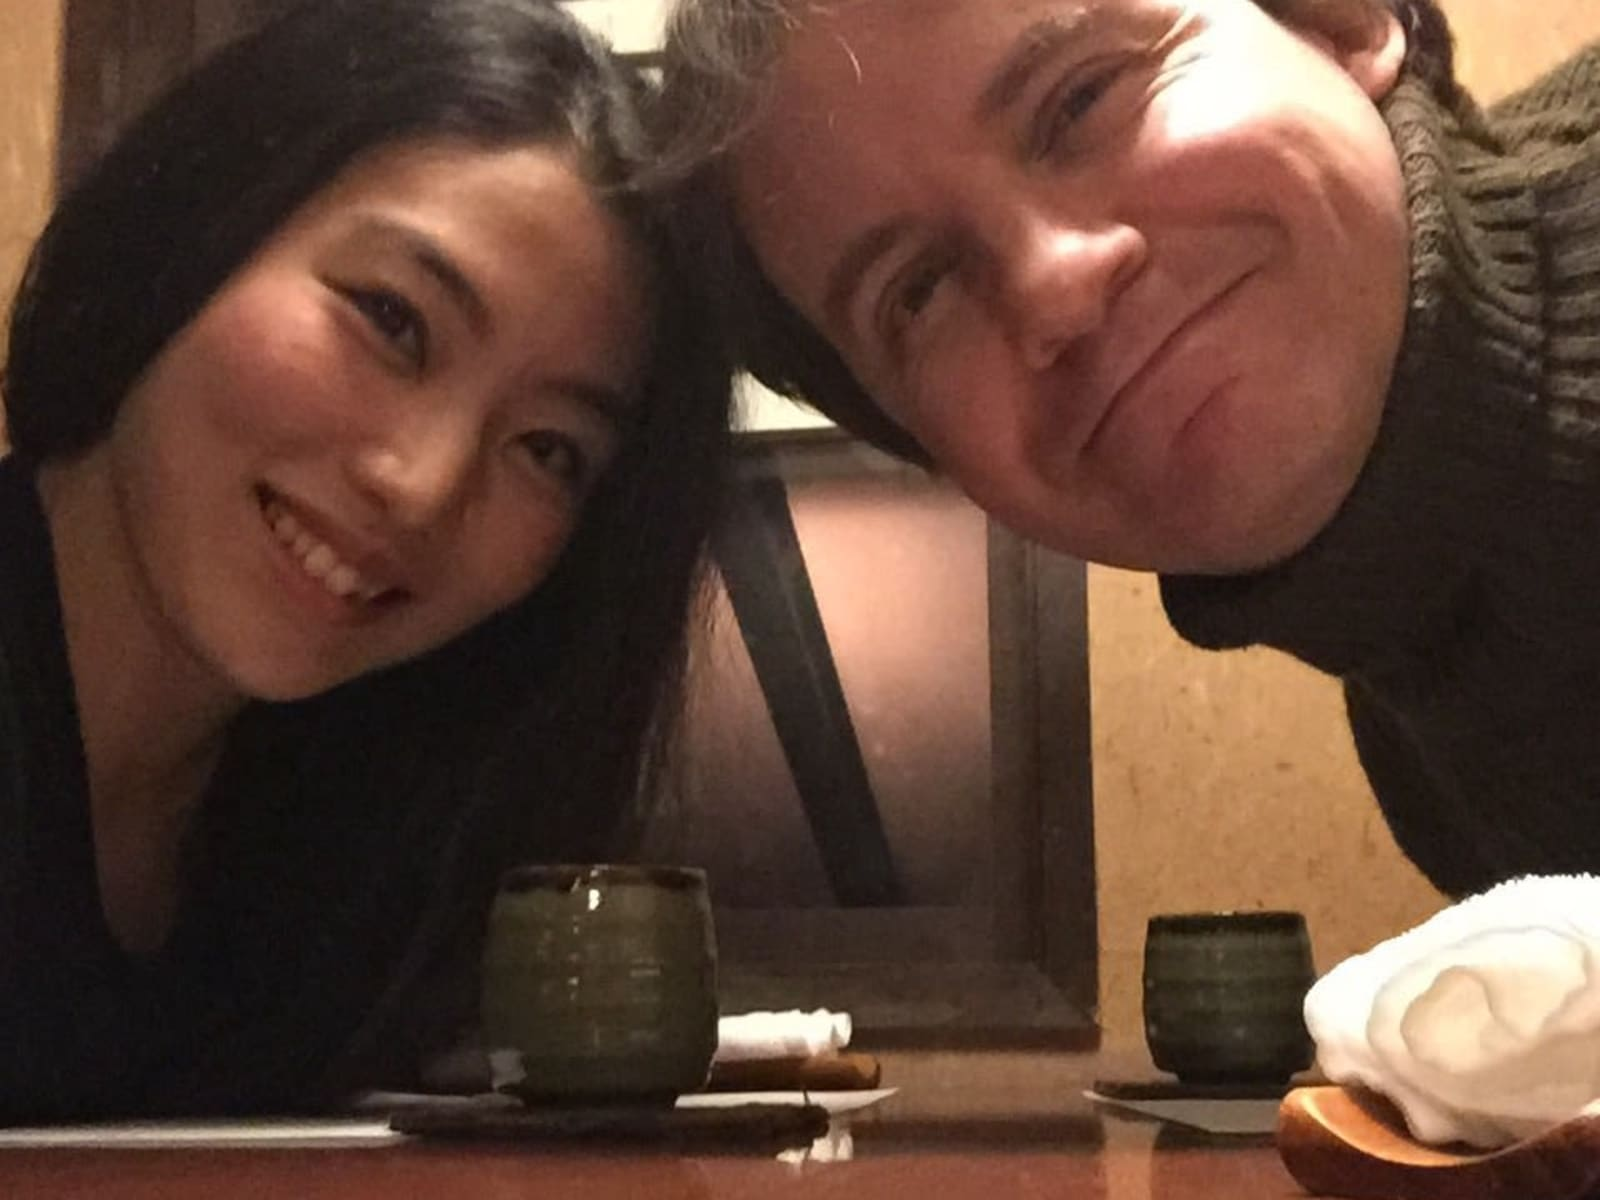 Michael & Miu from Kobe, Japan